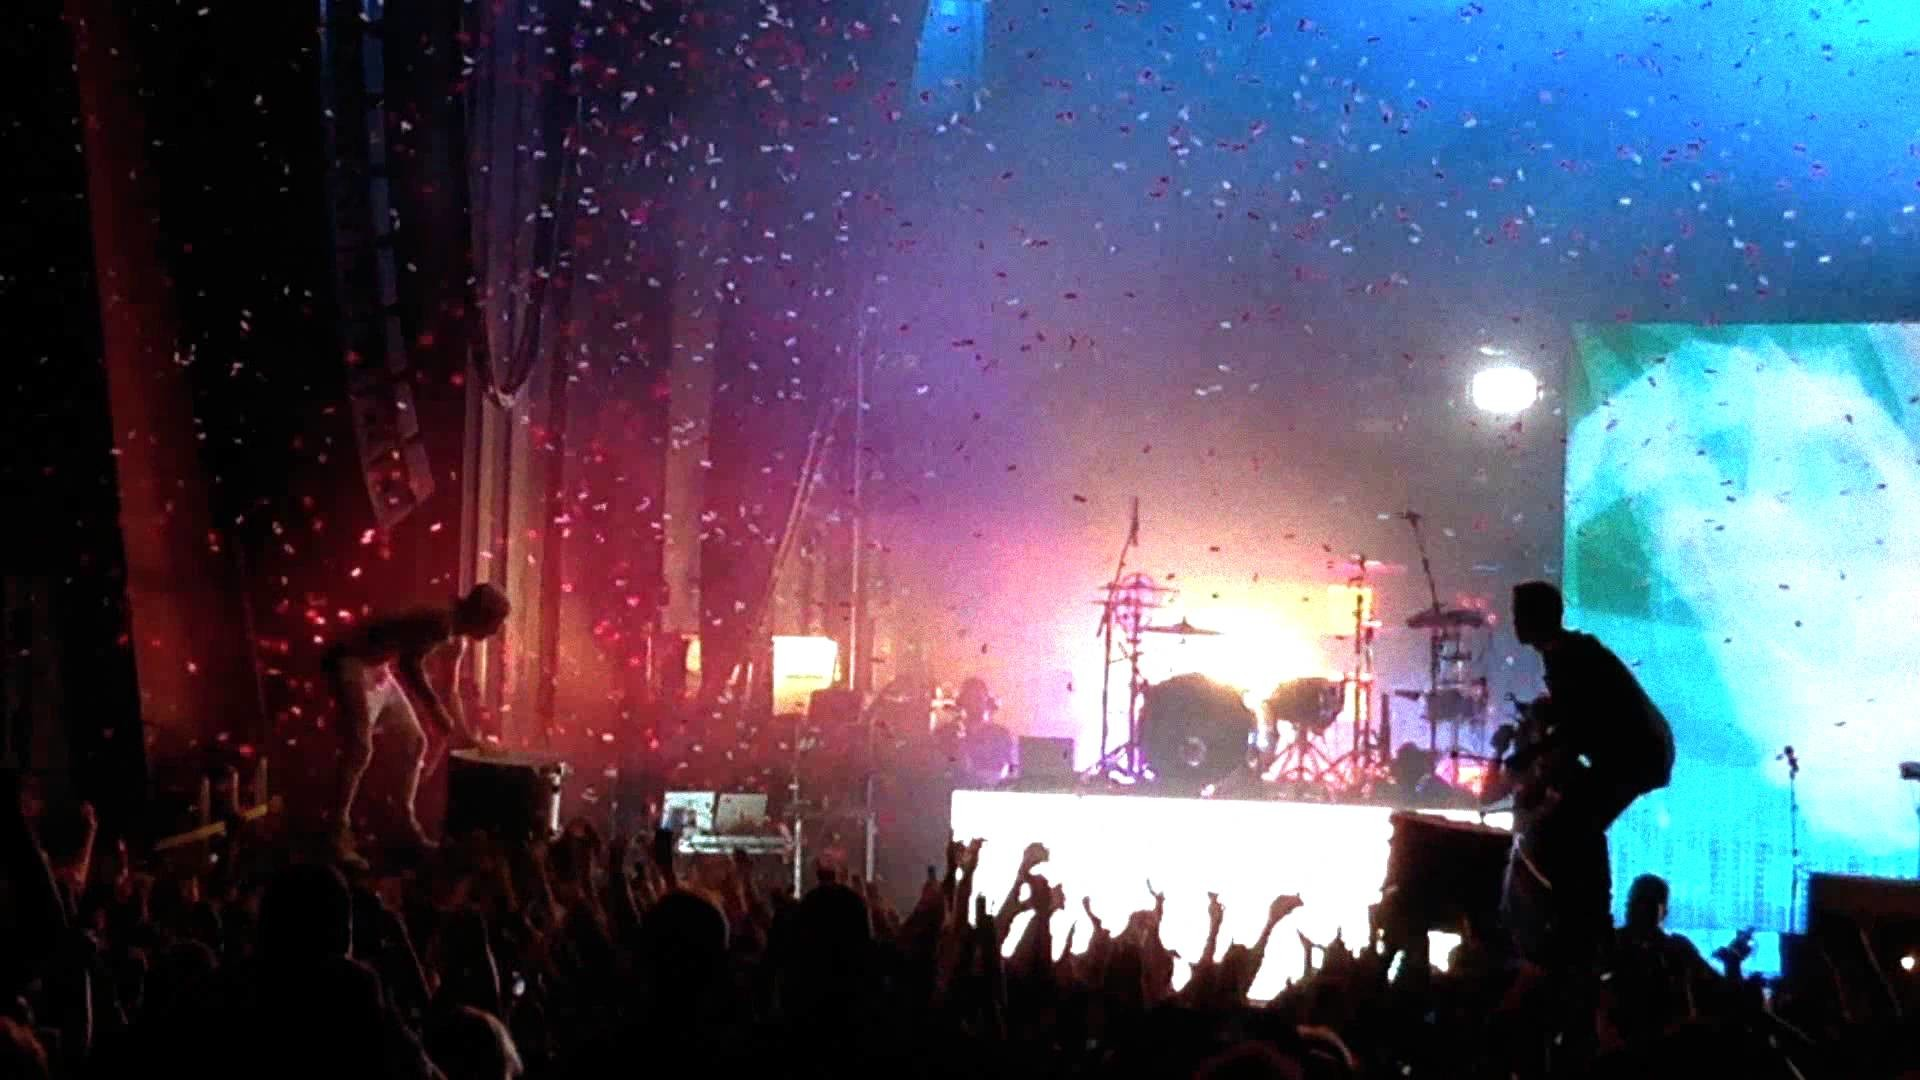 1920x1080 Twenty One Pilots Concert Photography